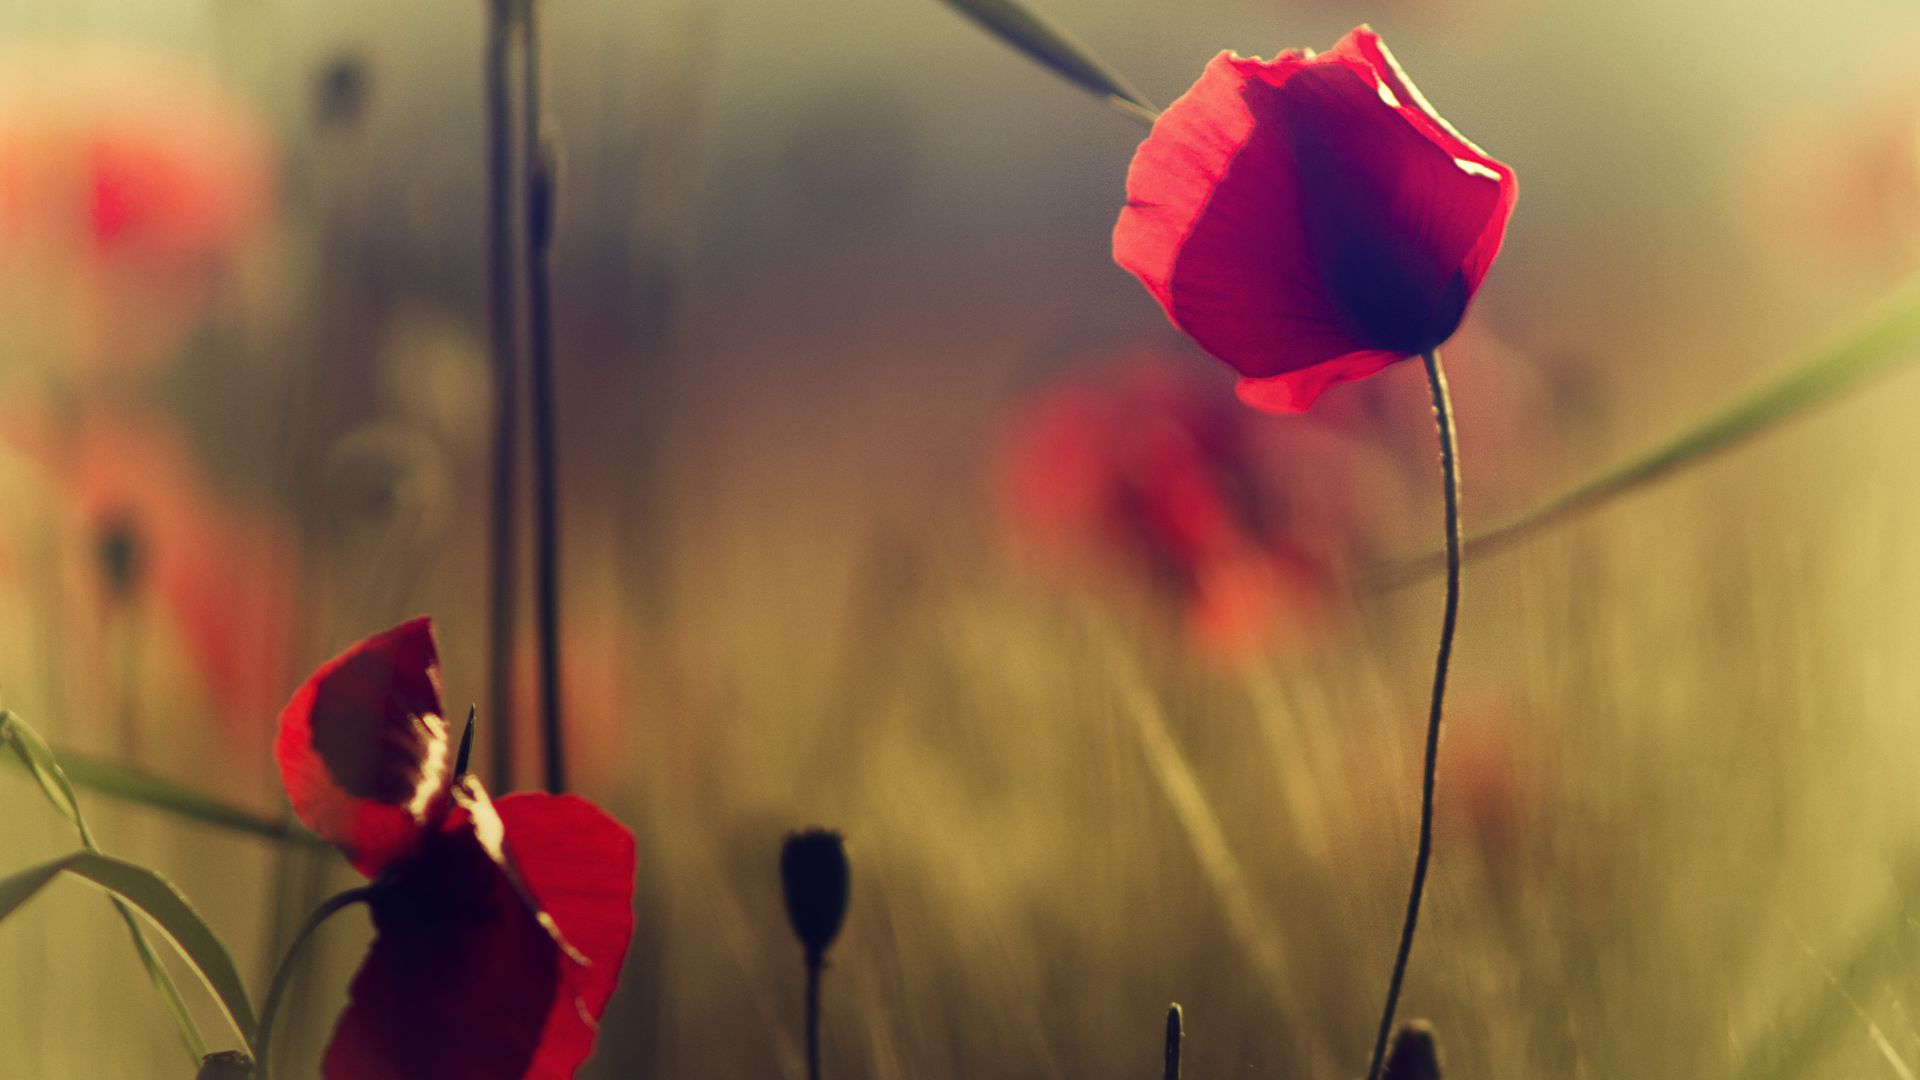 Poppy, 5k, 4k wallpaper, flowers, blur (horizontal)